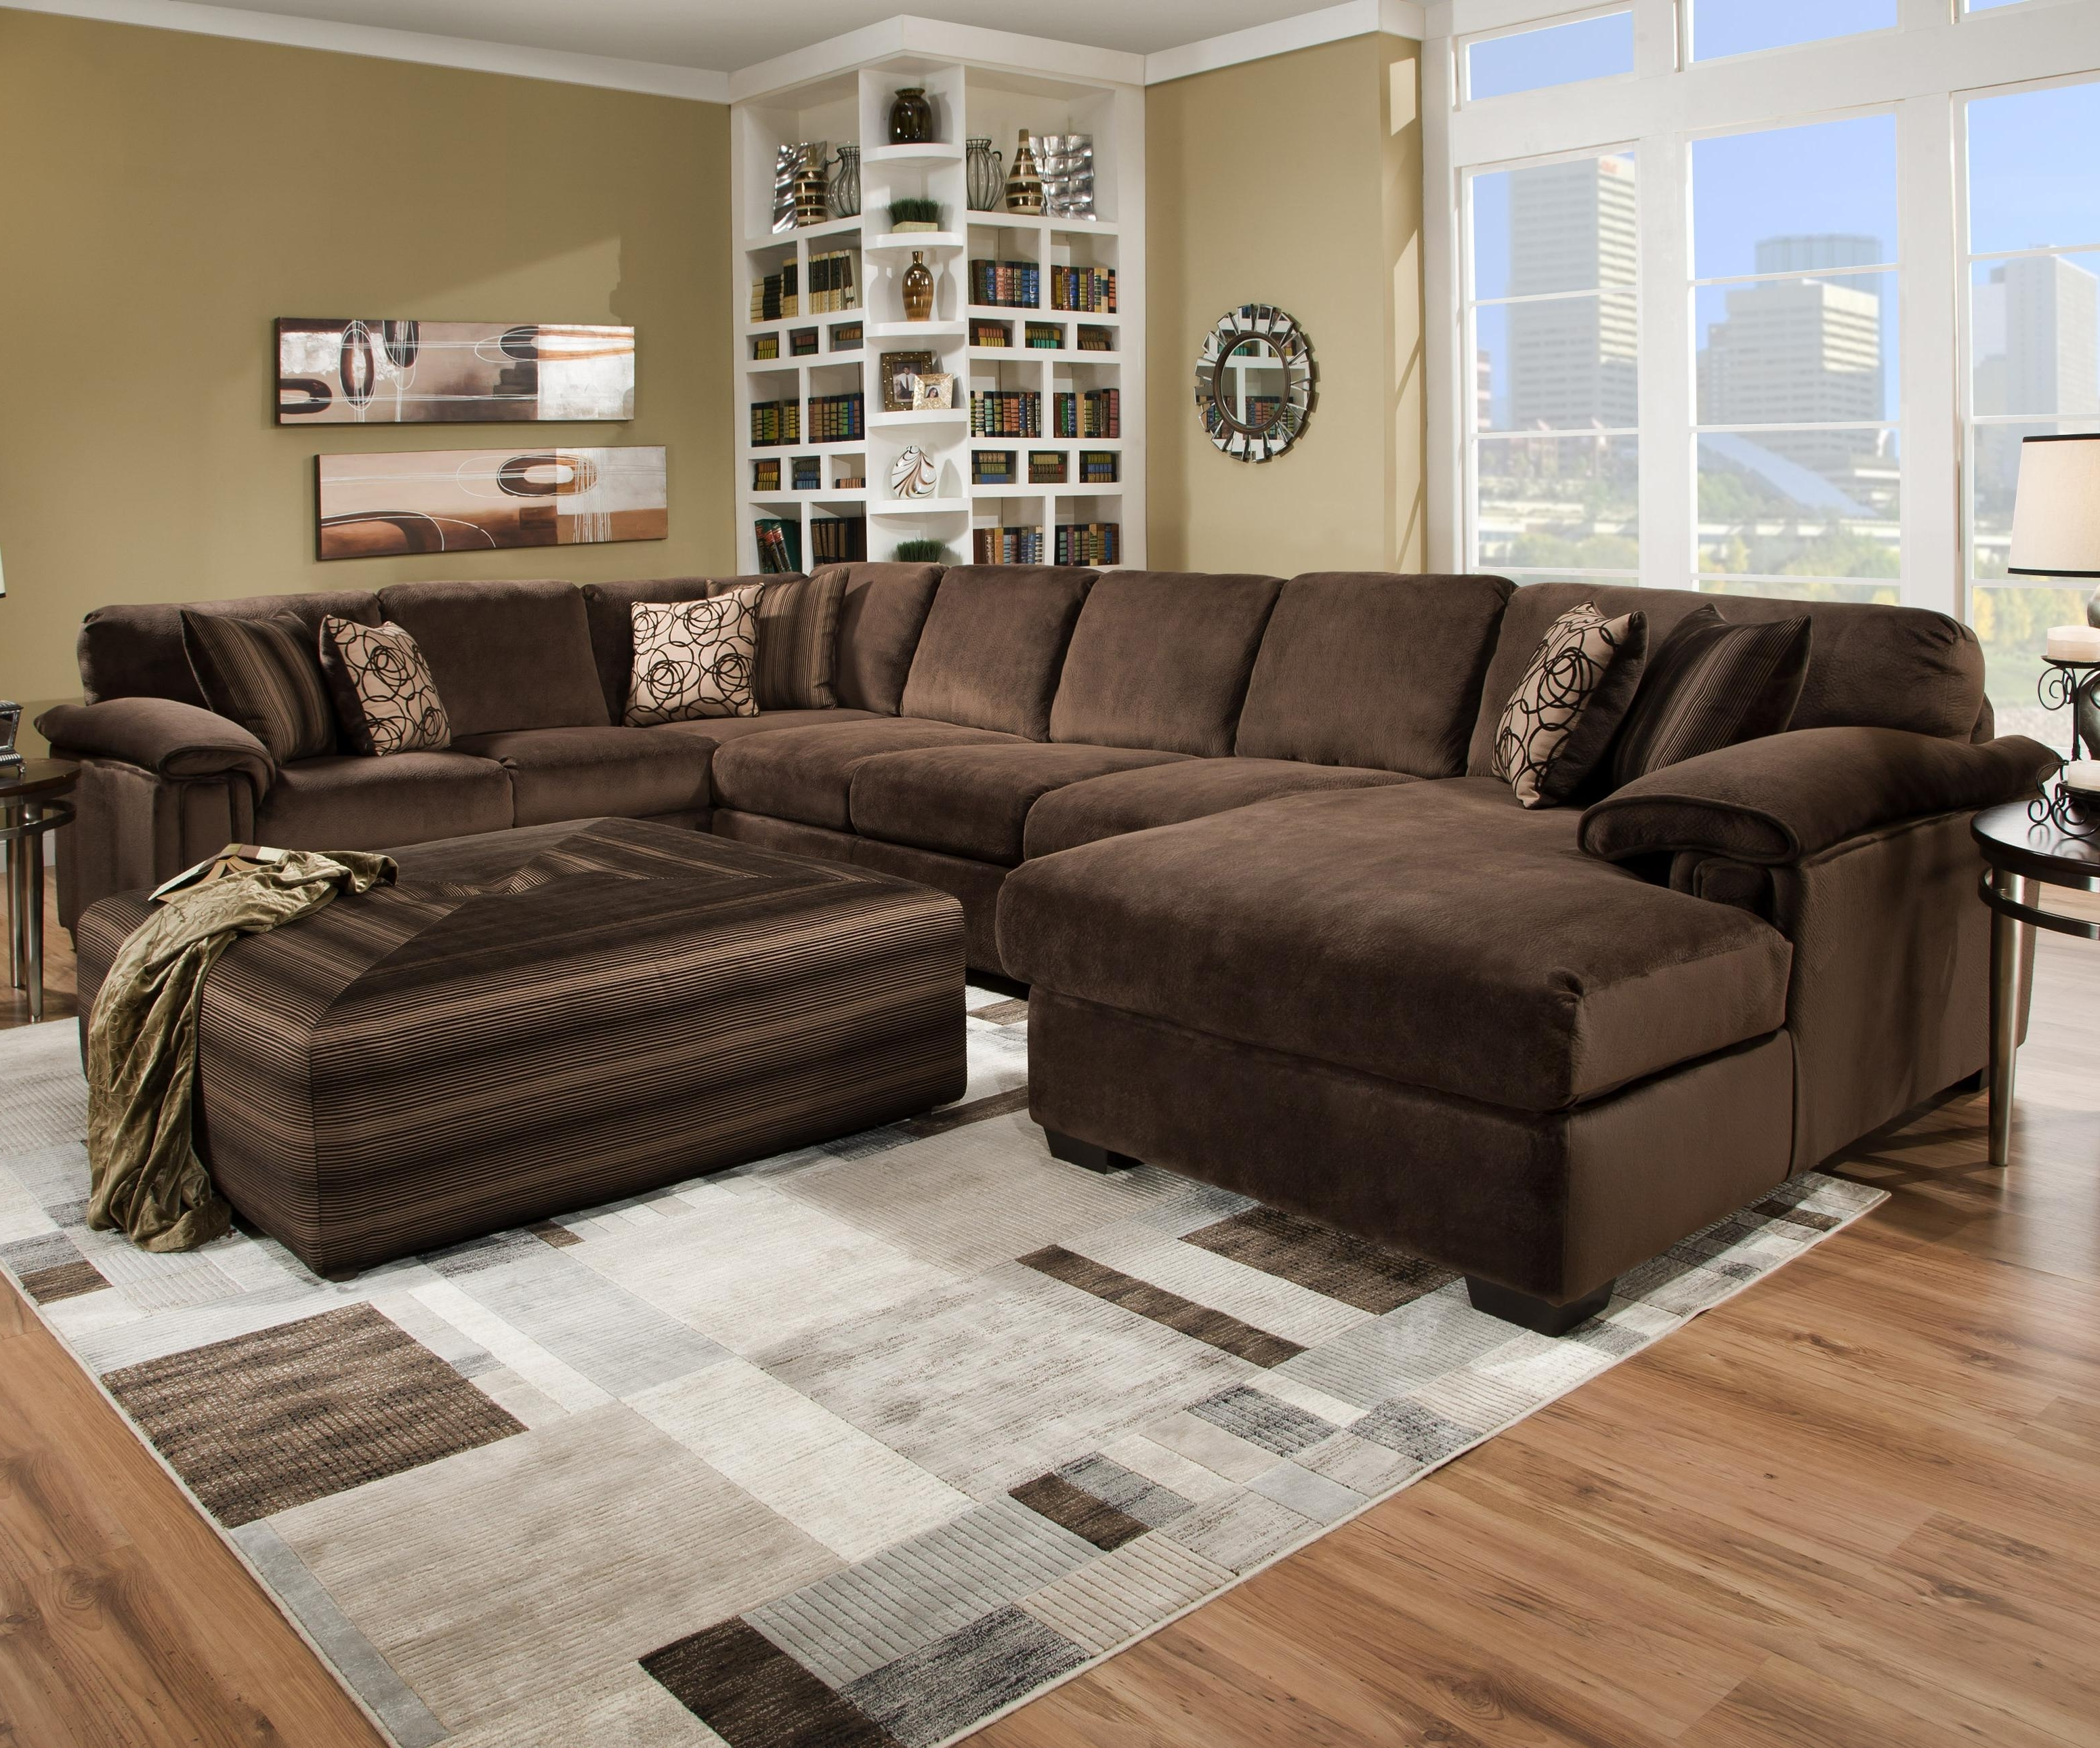 Most Up To Date Craftsman Sectional Sofas Intended For Large Sectional Sofa With Ottoman (View 16 of 20)